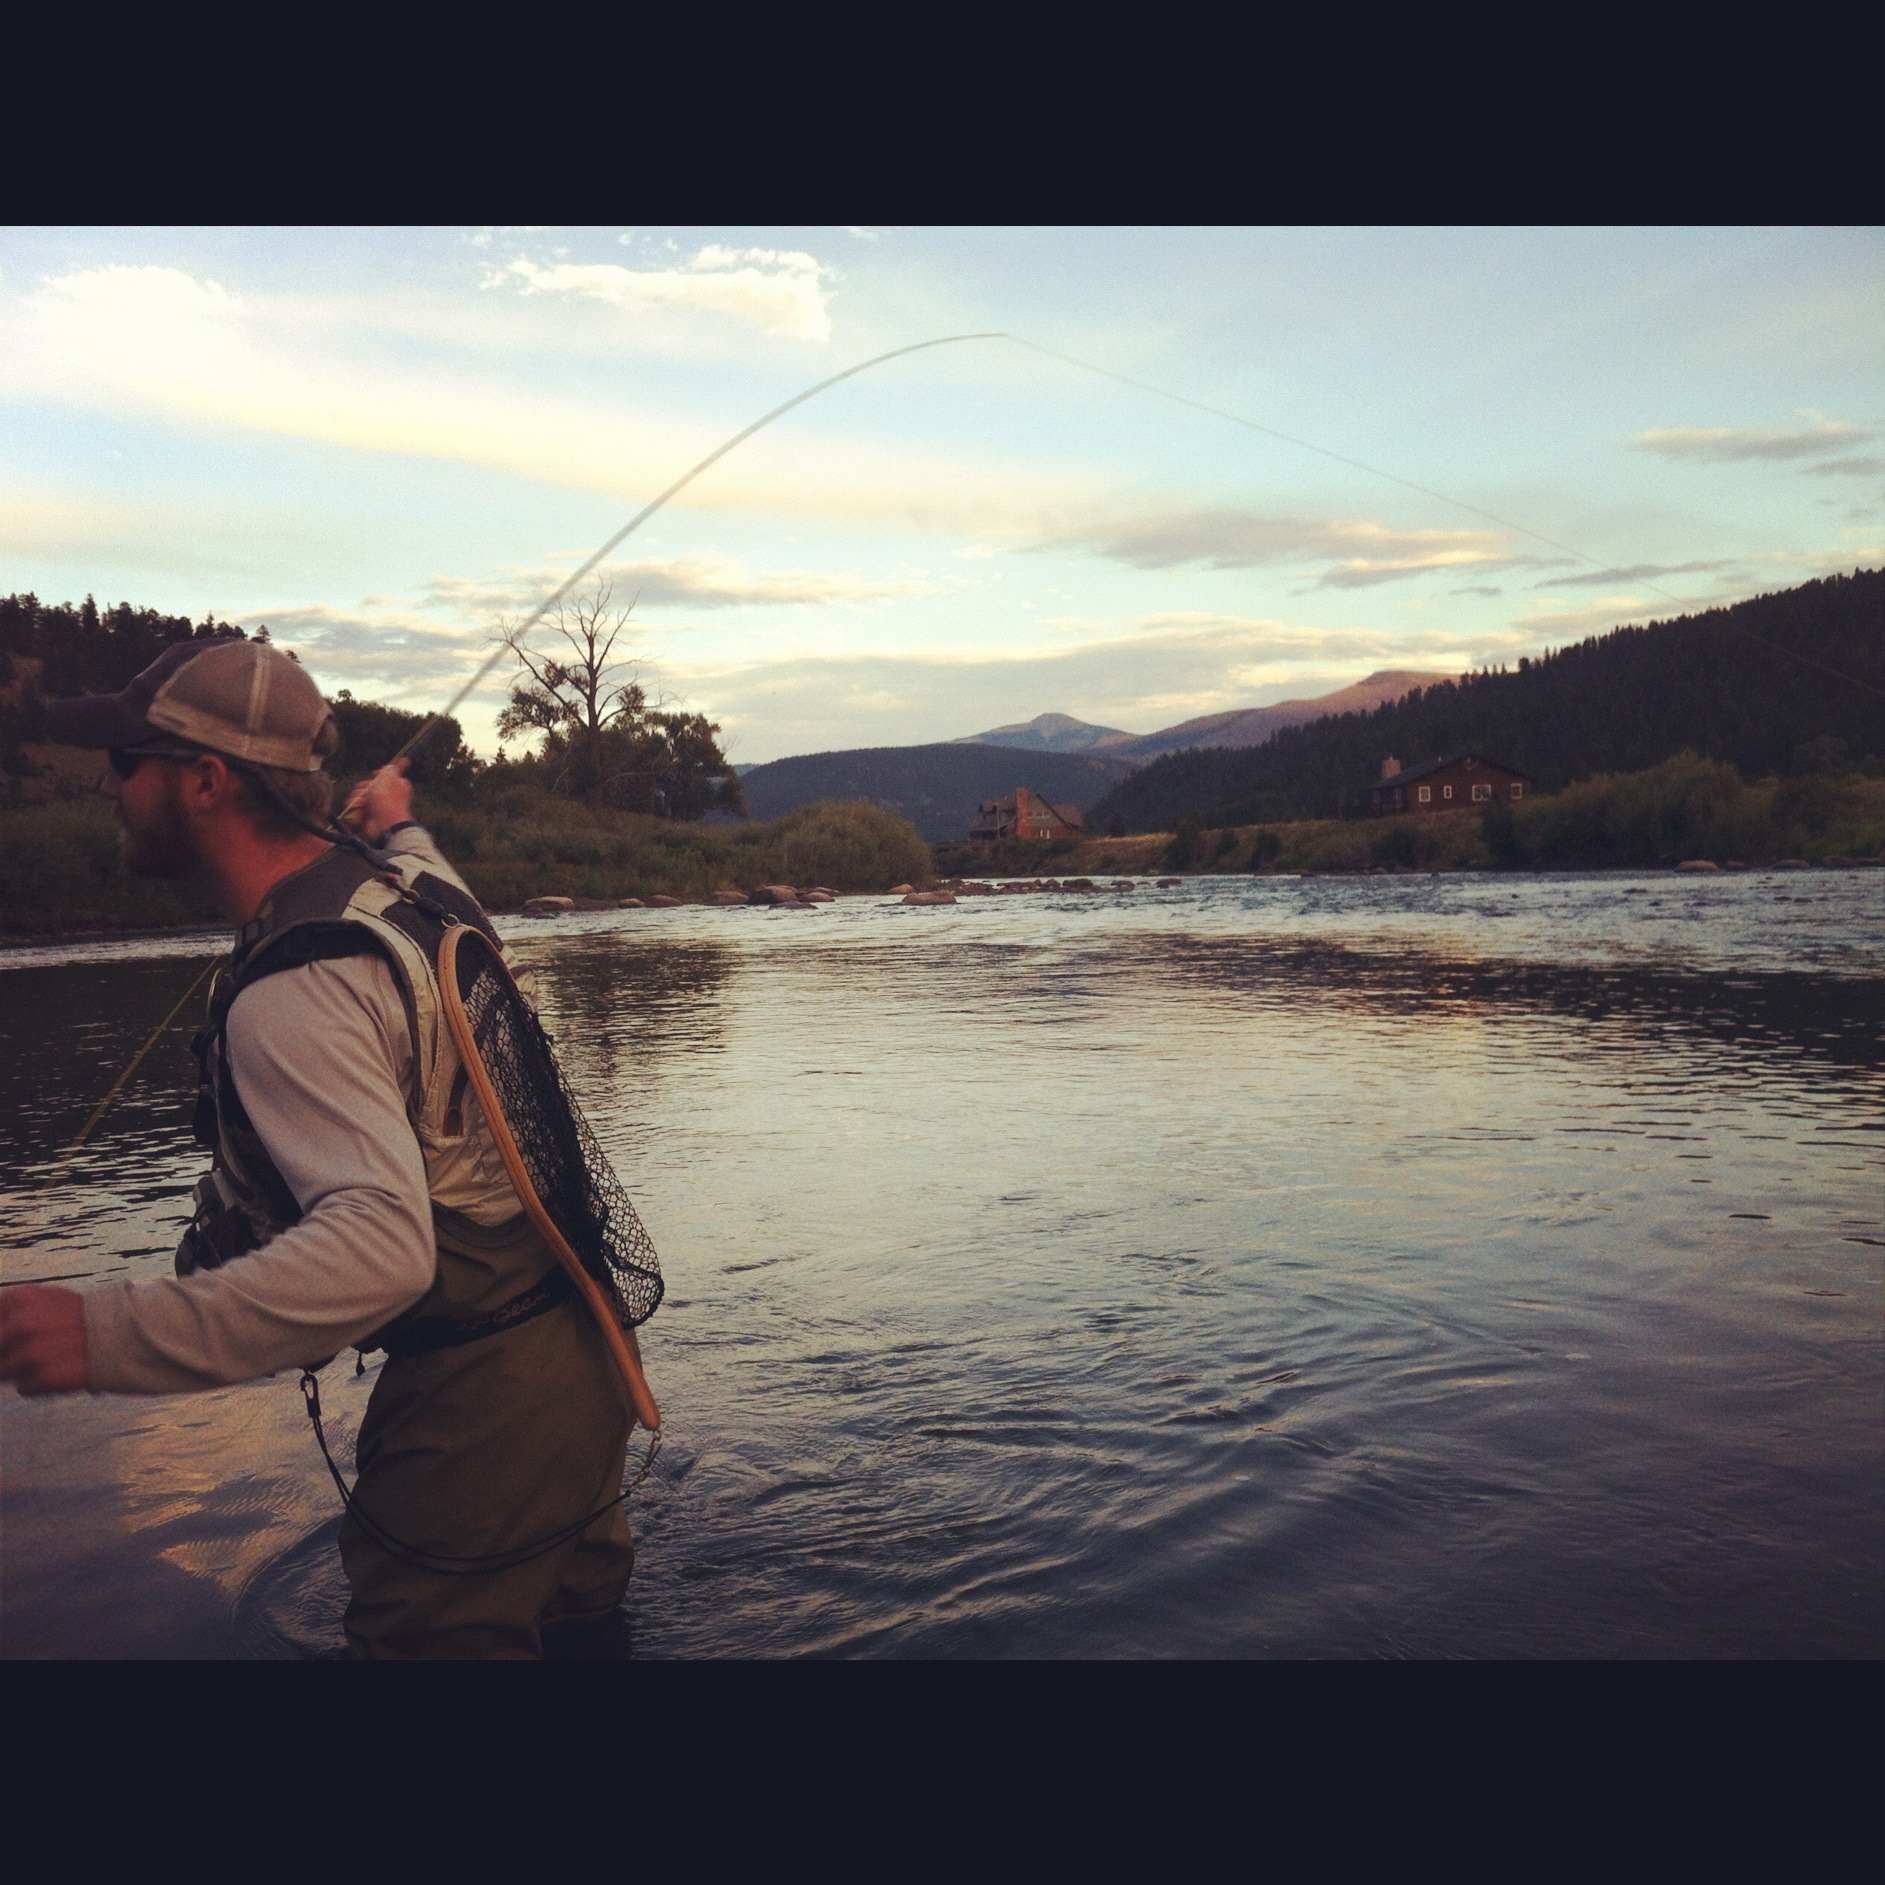 Fly fishing dating site